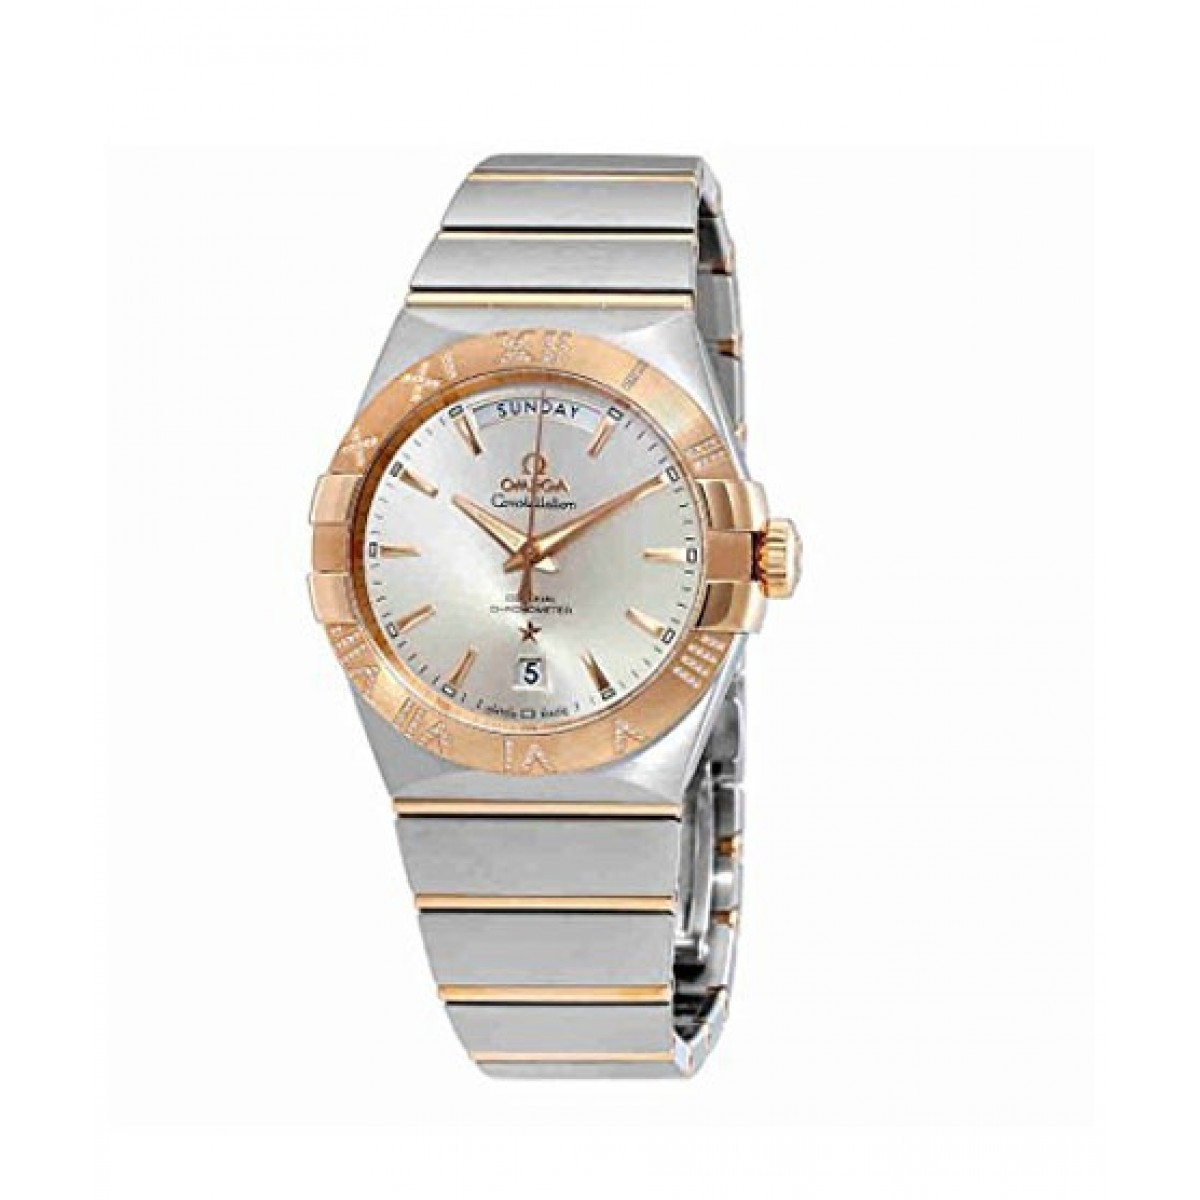 Omega Constellation Men S Watch Rose Gold Price In Pakistan Buy